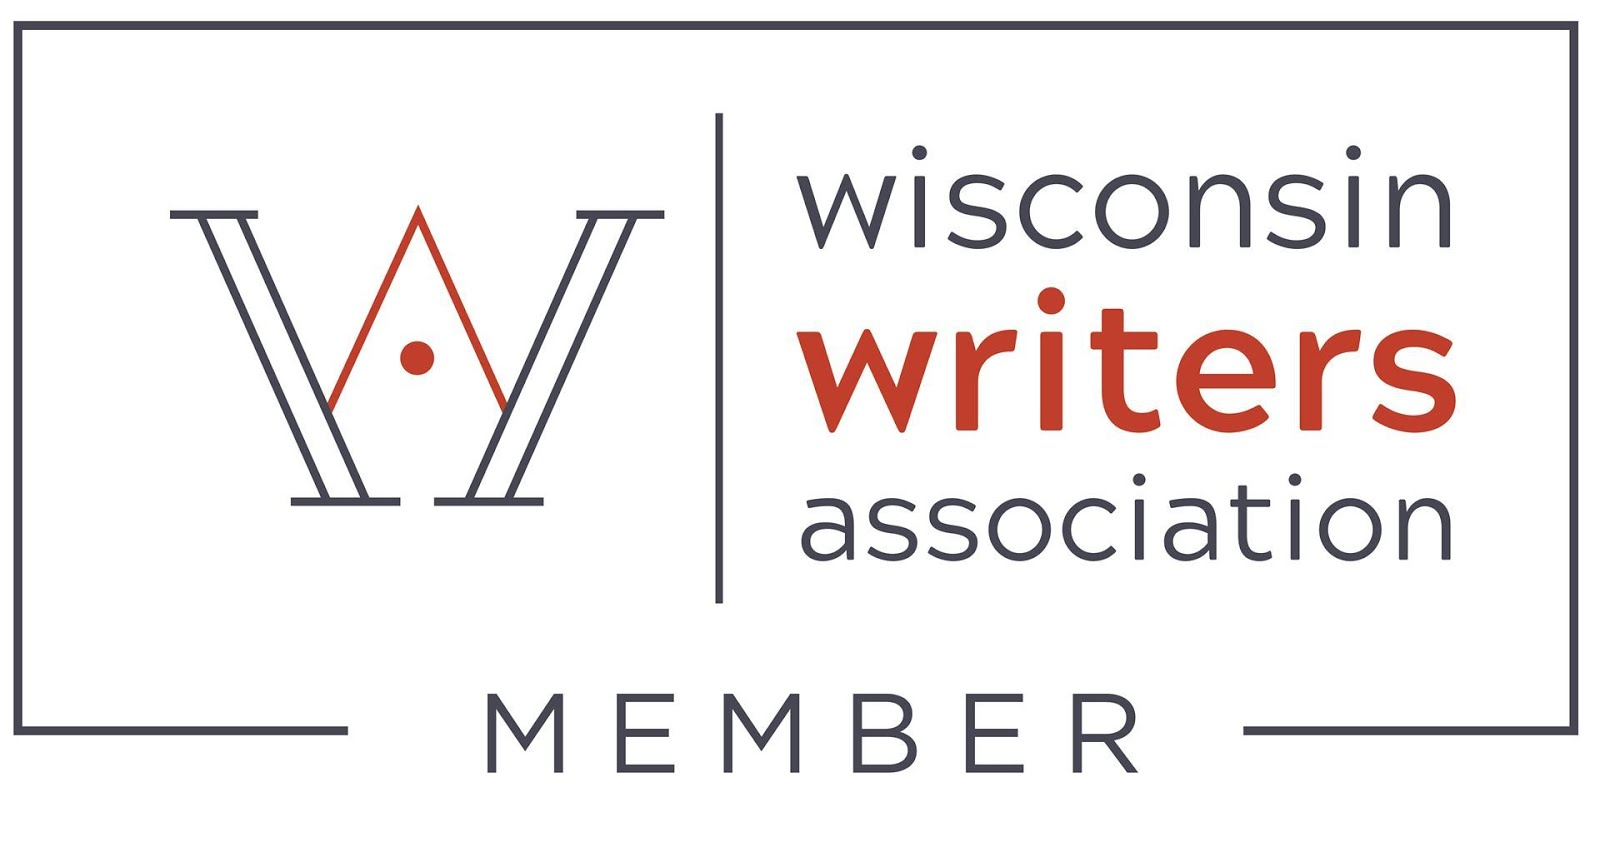 Wisconsin Writers